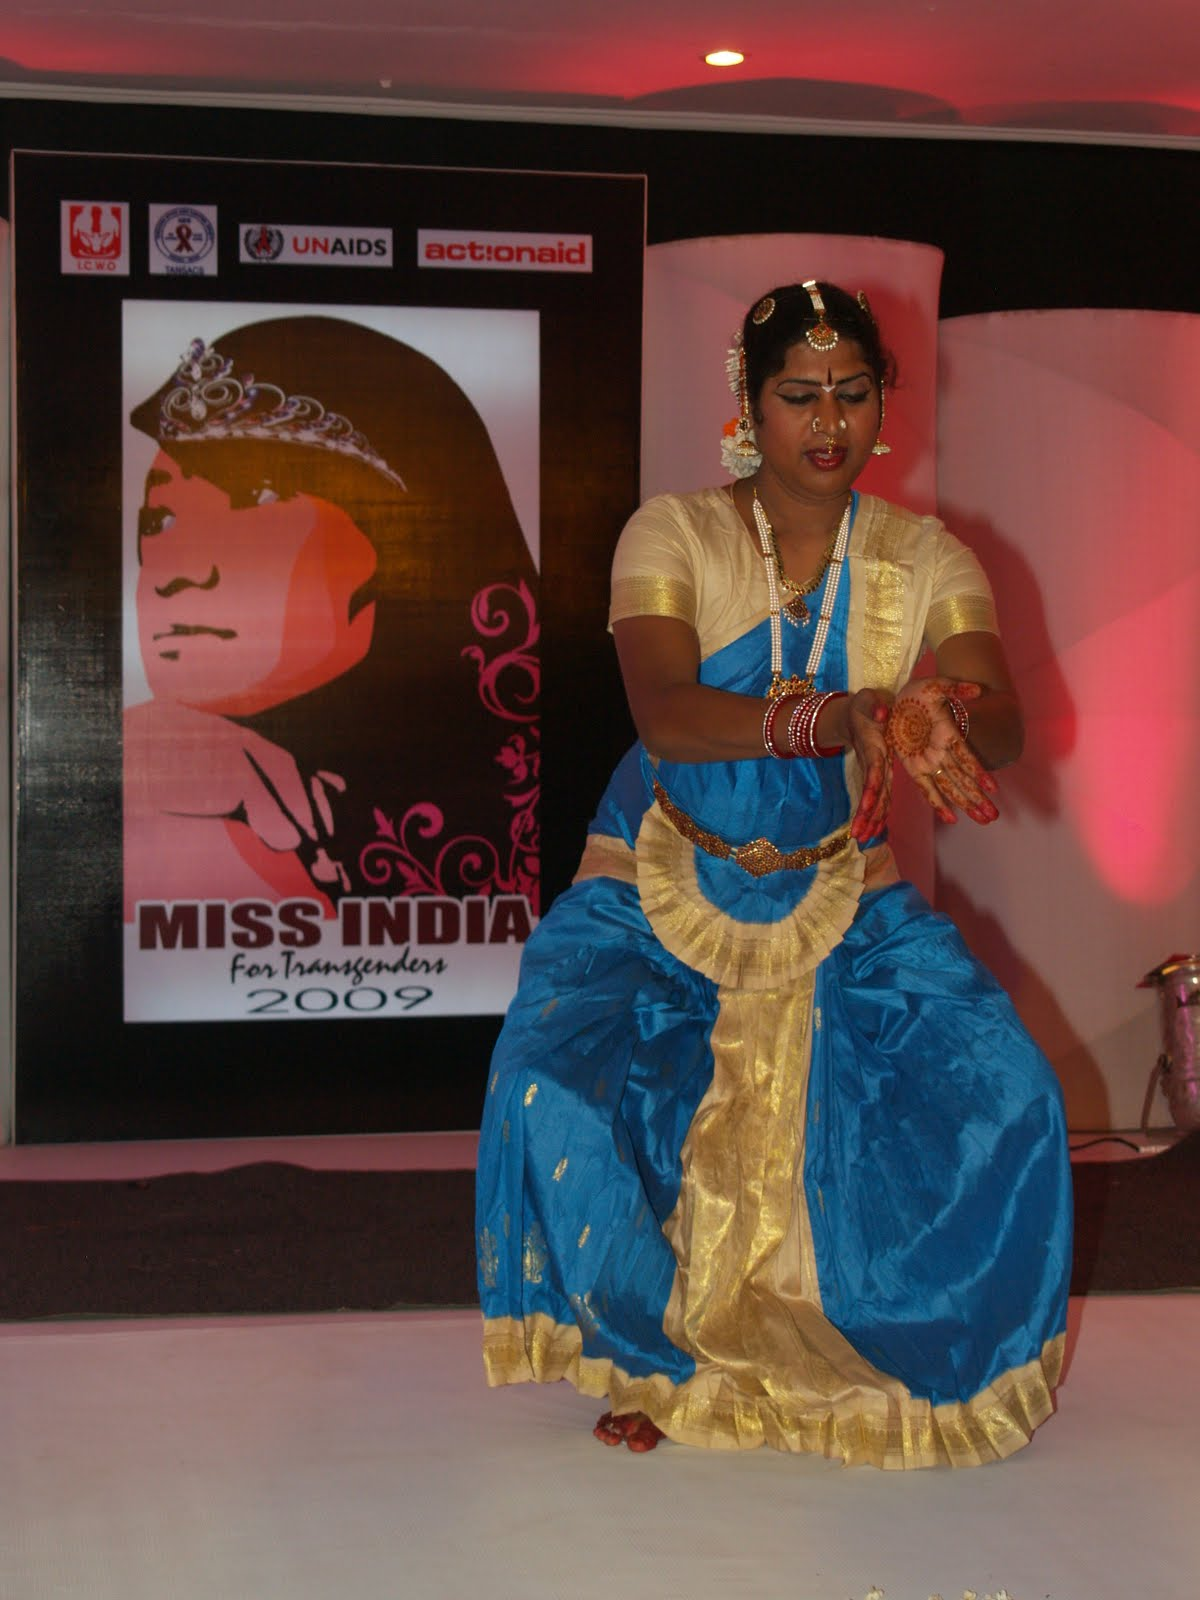 transgender issues in india The study examines the visibility of transgender issues and the incidence of media  facebook groups for the lgbtiq community in india against the.